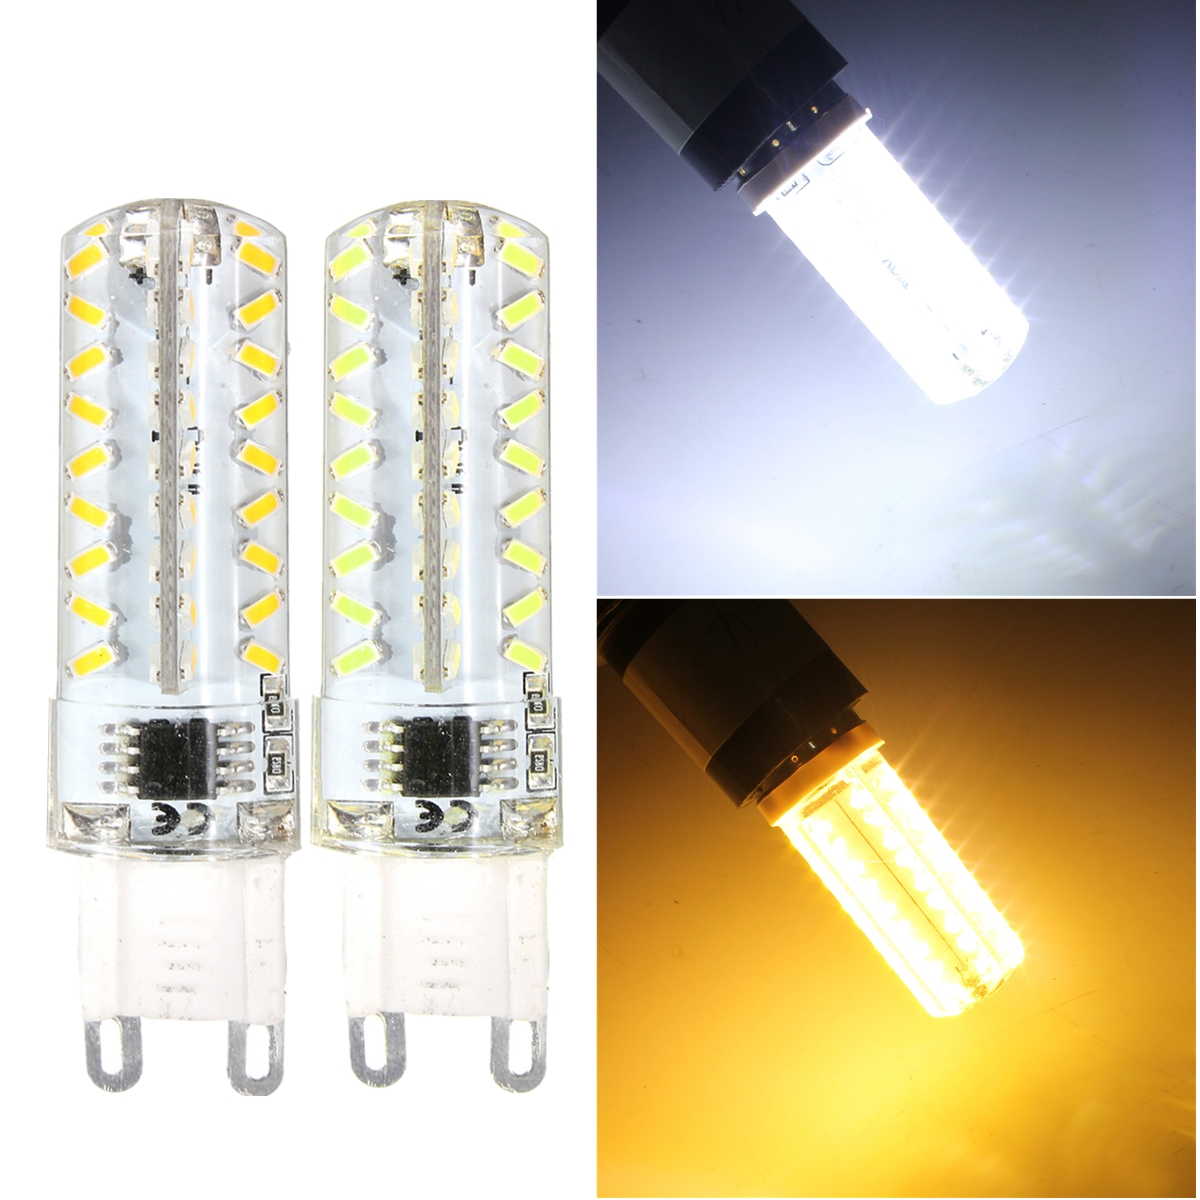 g4 g9 e14 3014 smd 5w 72 led dimmbar stecklampe stiftsockel birne silikon 220v ebay. Black Bedroom Furniture Sets. Home Design Ideas